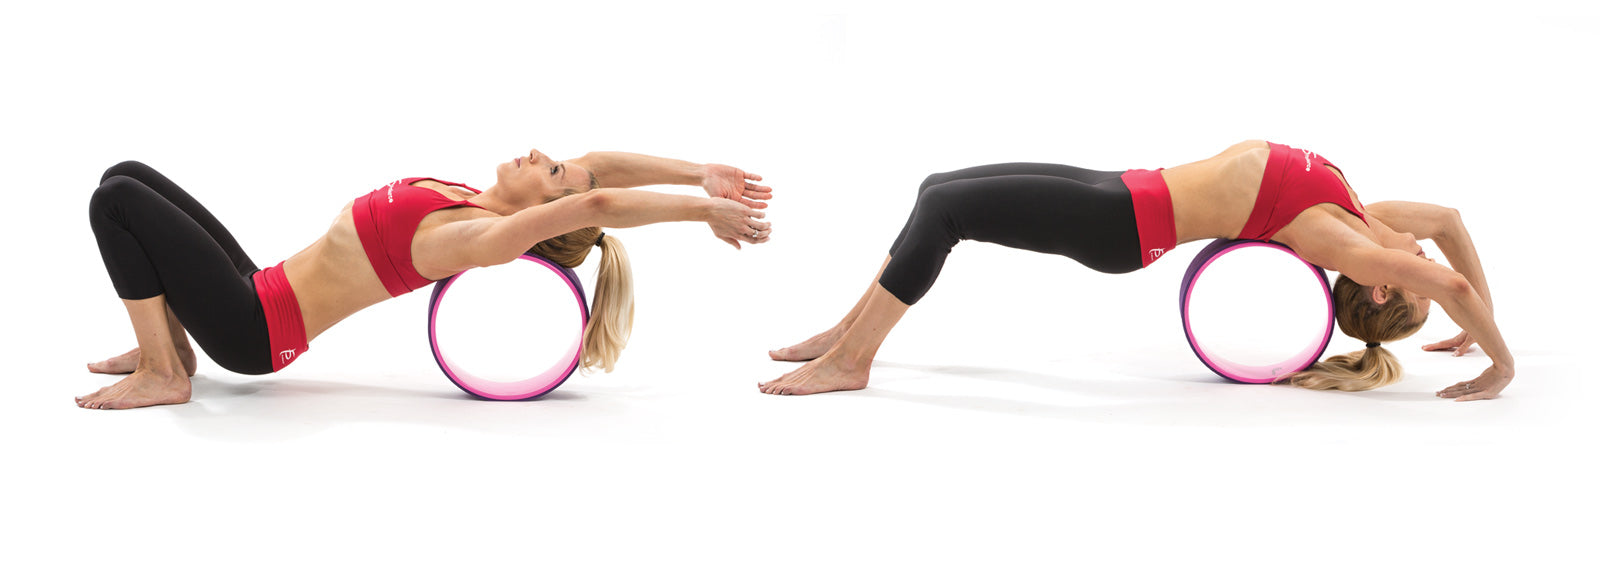 ProSource Yoga Wheel Exercise